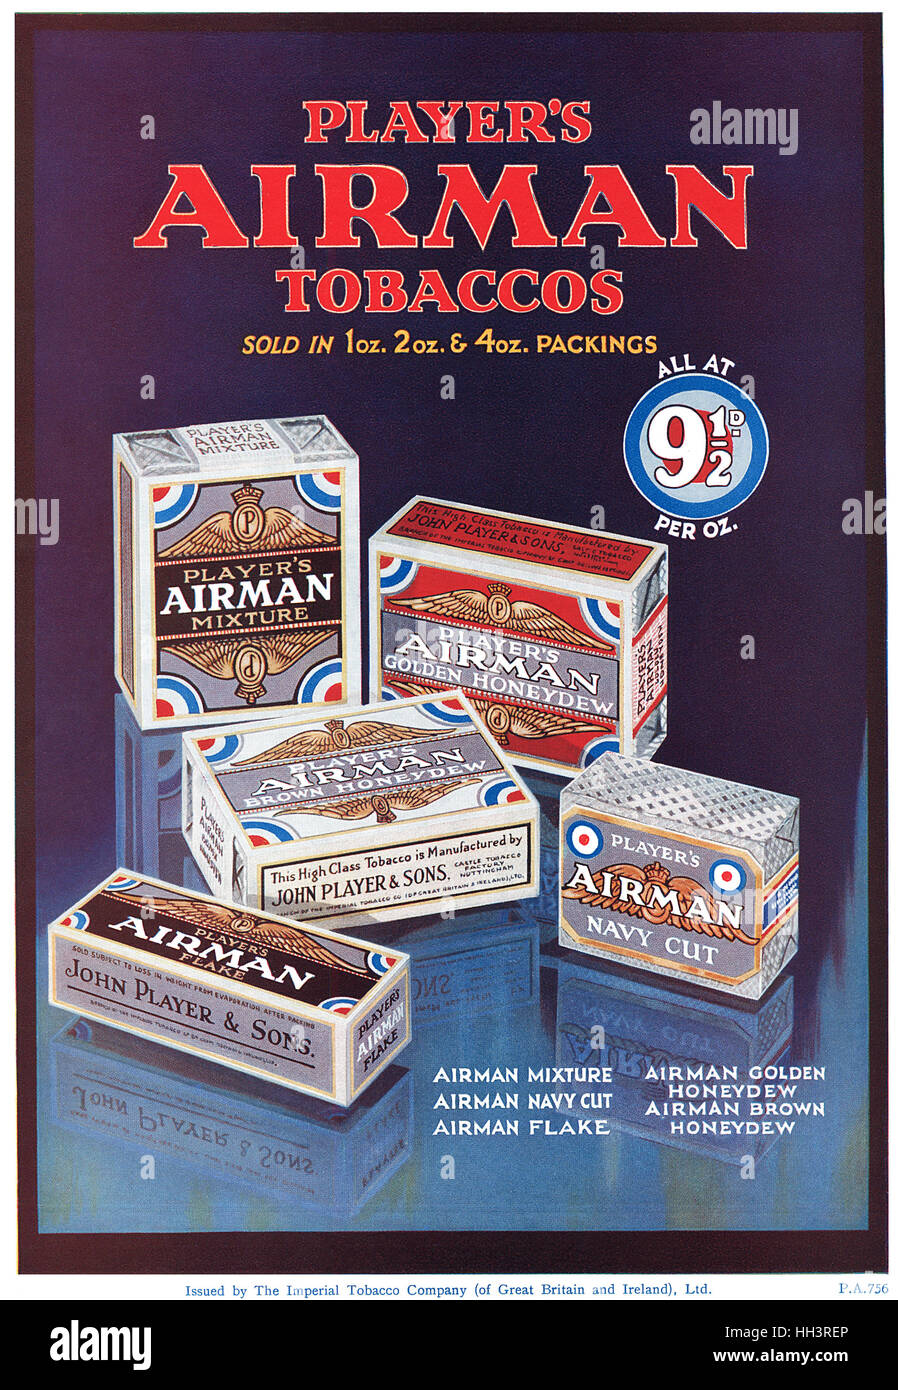 1930 British advertisement for Player's Airman Cigarettes - Stock Image